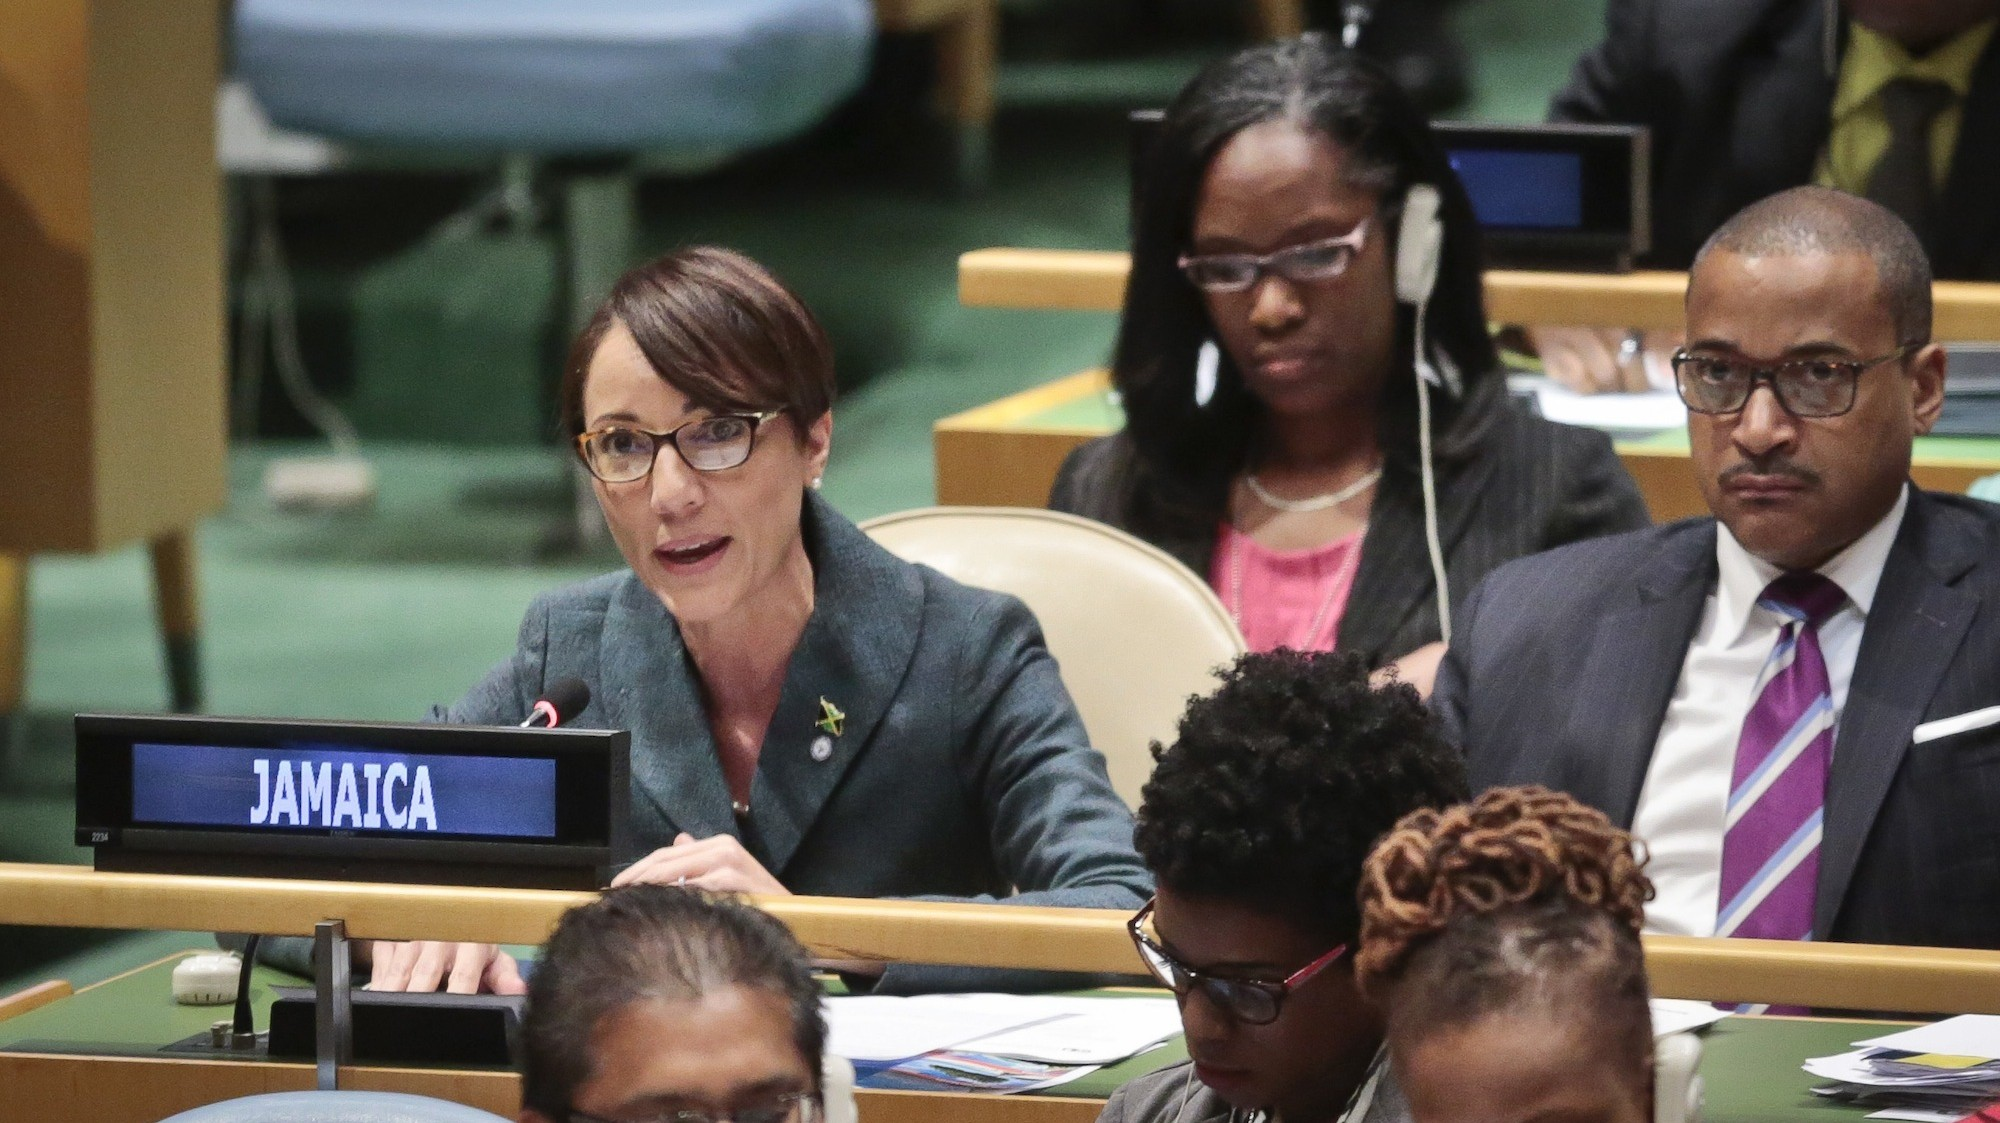 Jamaica Dropped the Mic on 4/20 and Told the UN to Get Its Act Together On Weed